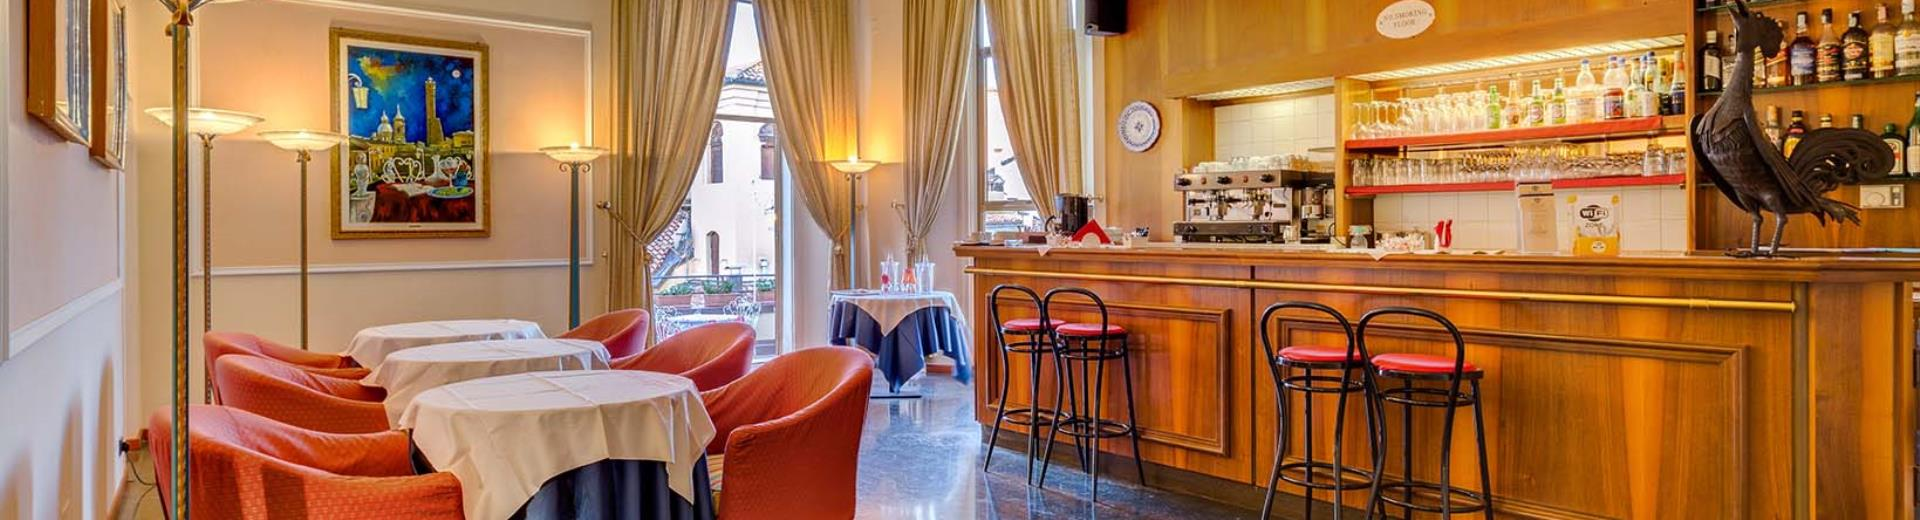 Enjoy a drink in the bar at the best Western Hotel San Donato Bologna Center